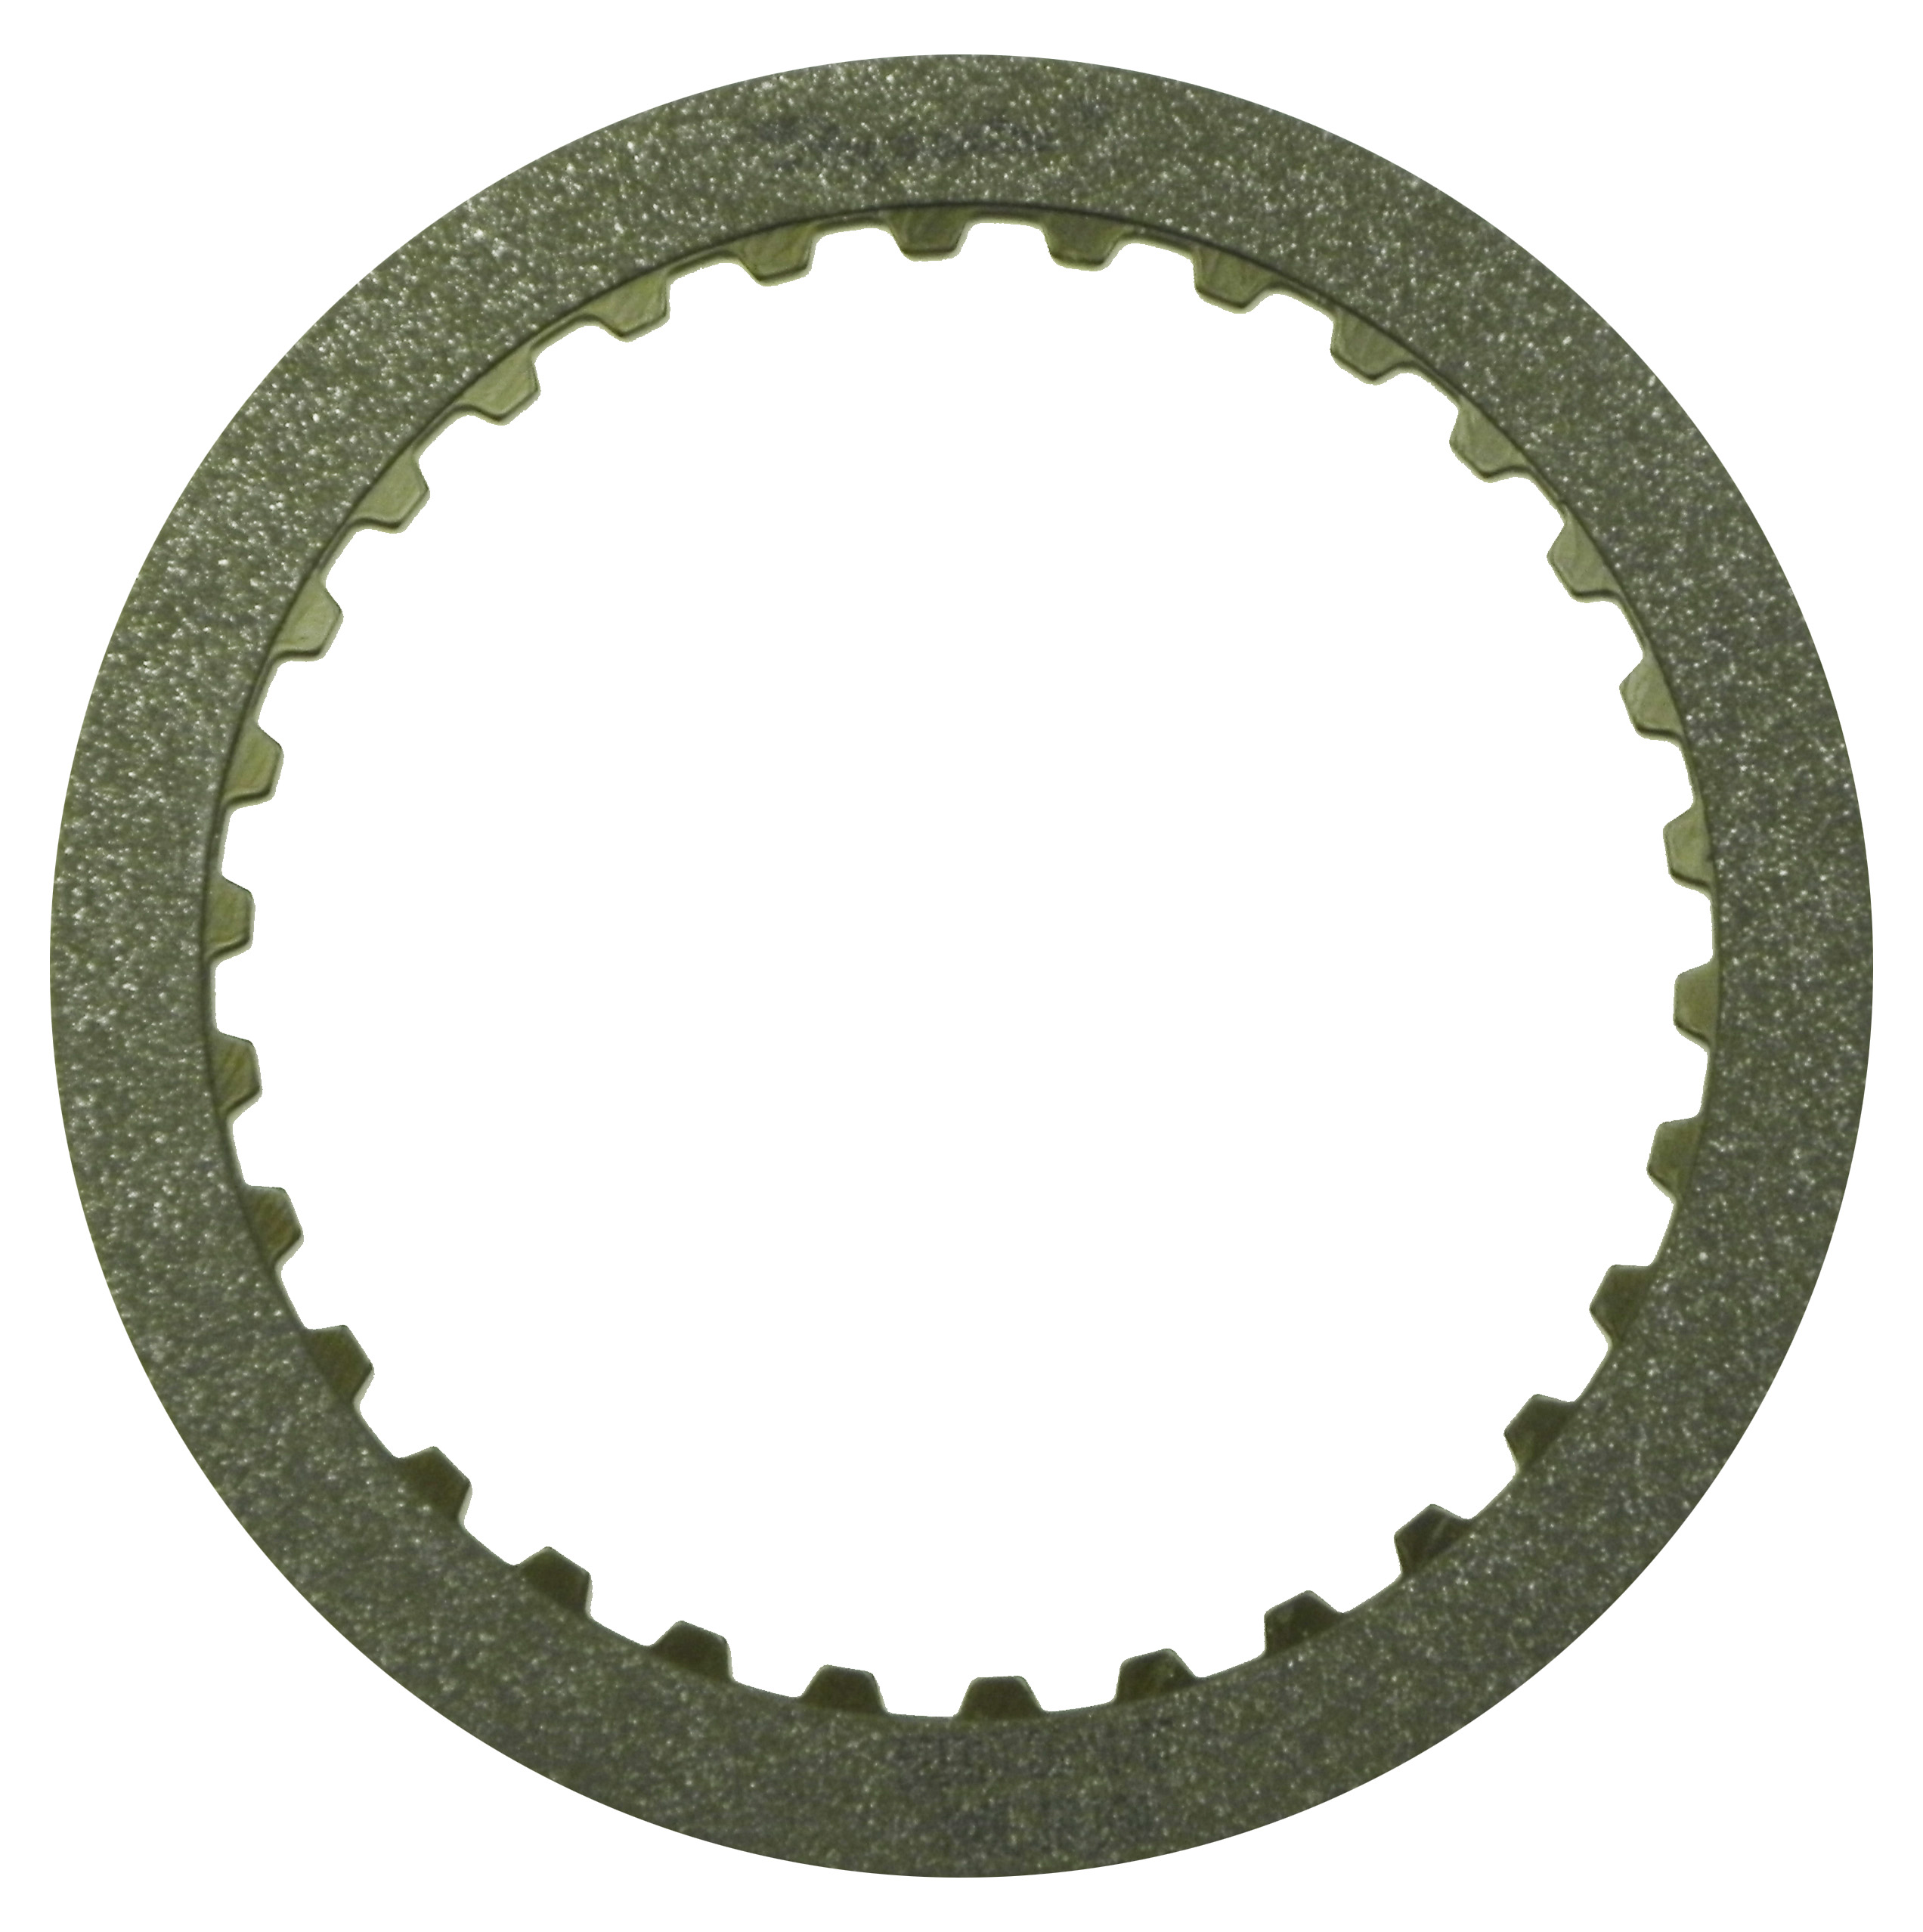 R561310 | 1969-1988 Friction Clutch Plate Graphitic 2nd Graphitic